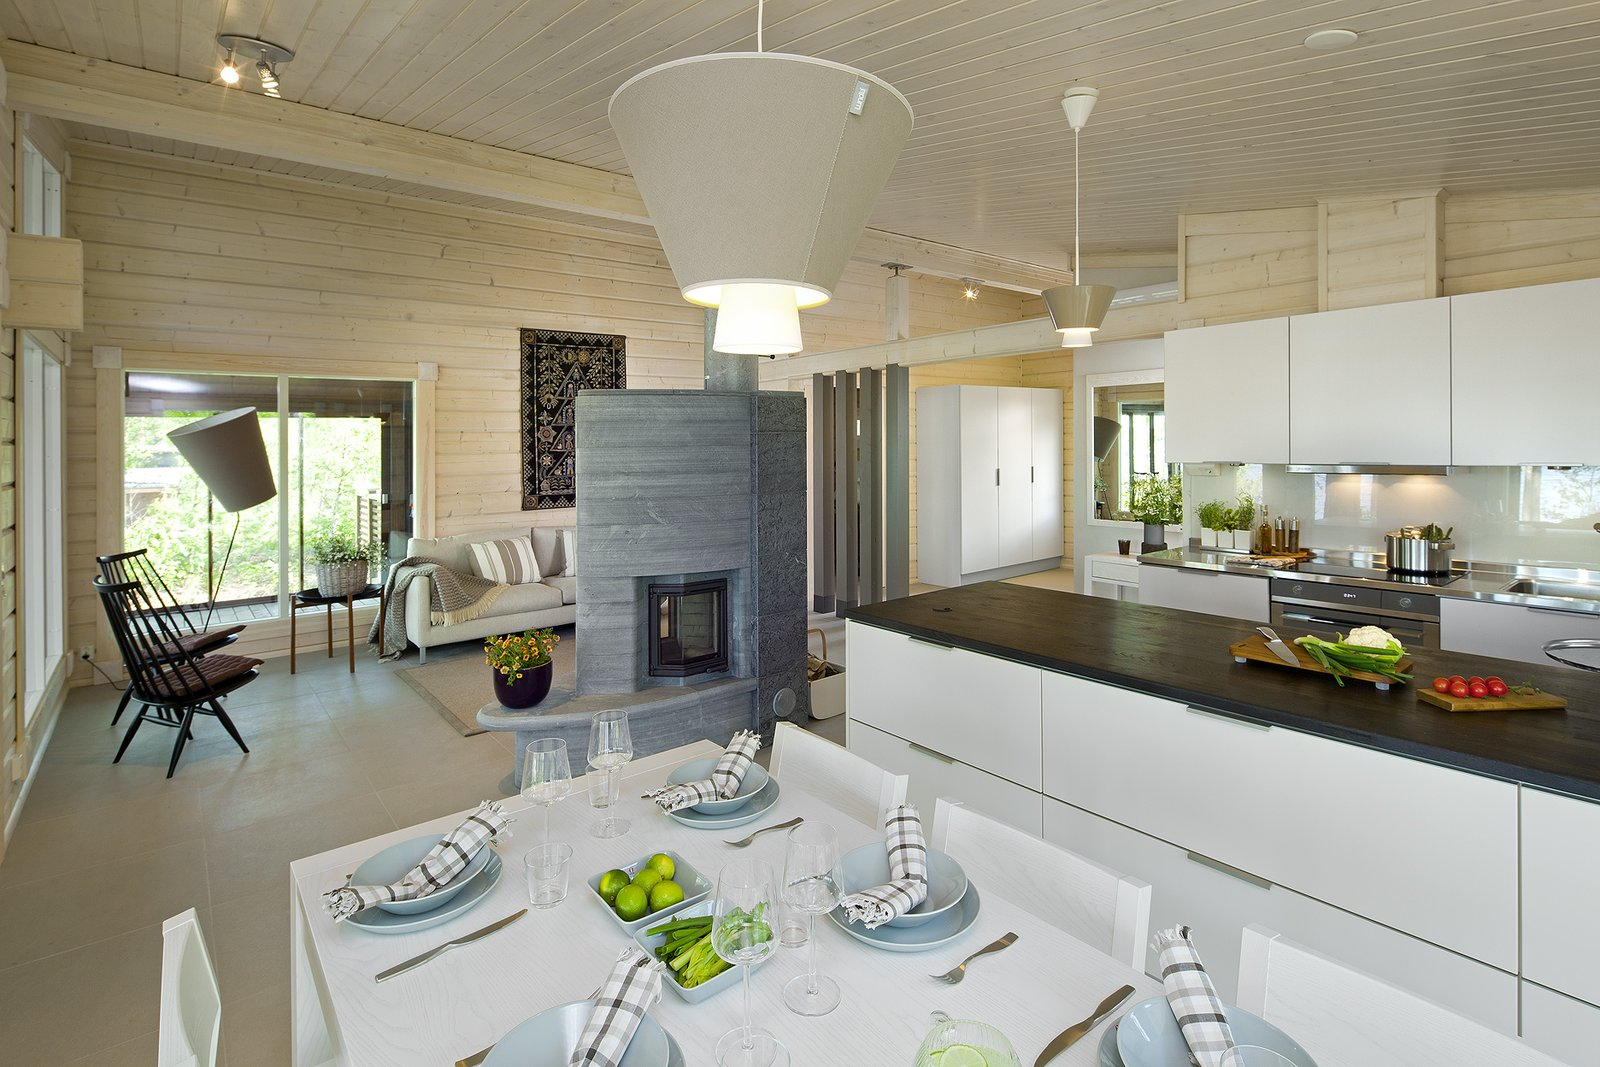 Dining Room, Pendant Lighting, Wood Burning Fireplace, Table, Chair, and Ceiling Lighting This model has vaulted ceilings and an glass-encased outdoor area with a large overhanging roof.  Photo 11 of 21 in These 8 Log Cabin Kit Homes Celebrate Nordic Minimalism